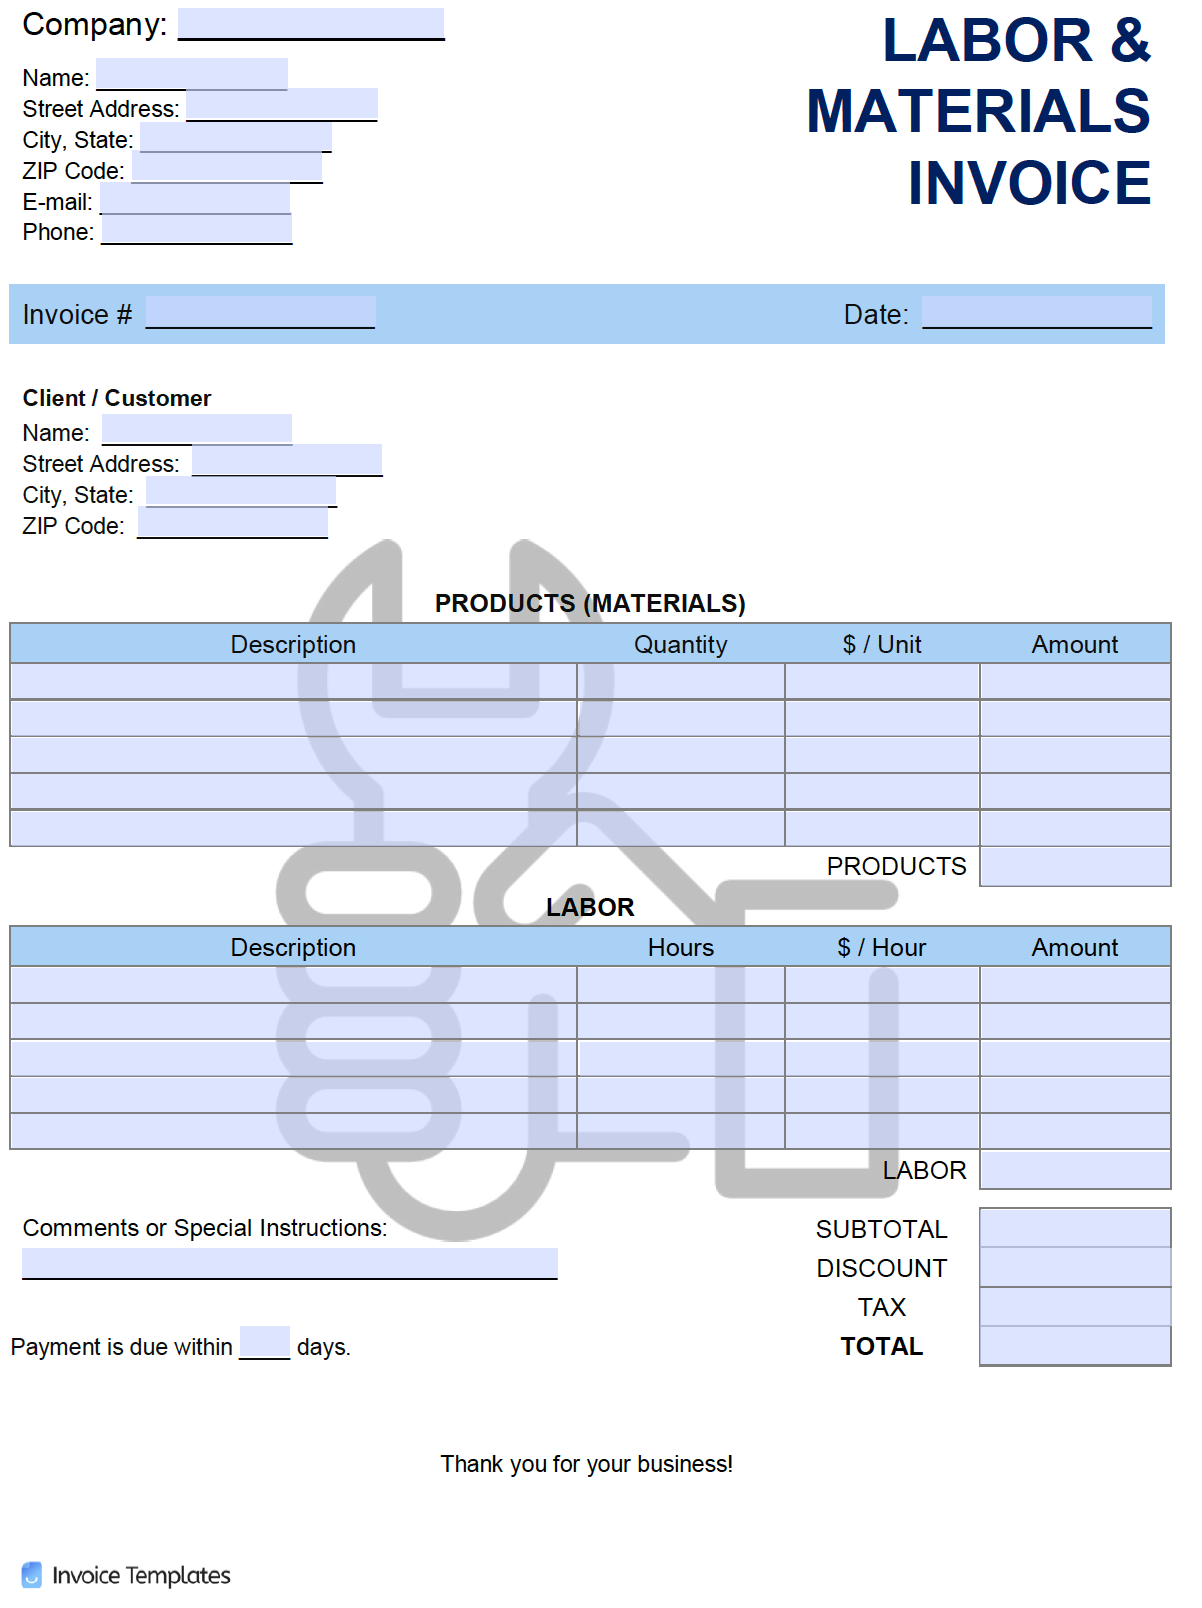 Free Labor And Materials Invoice Template Pdf Word Excel